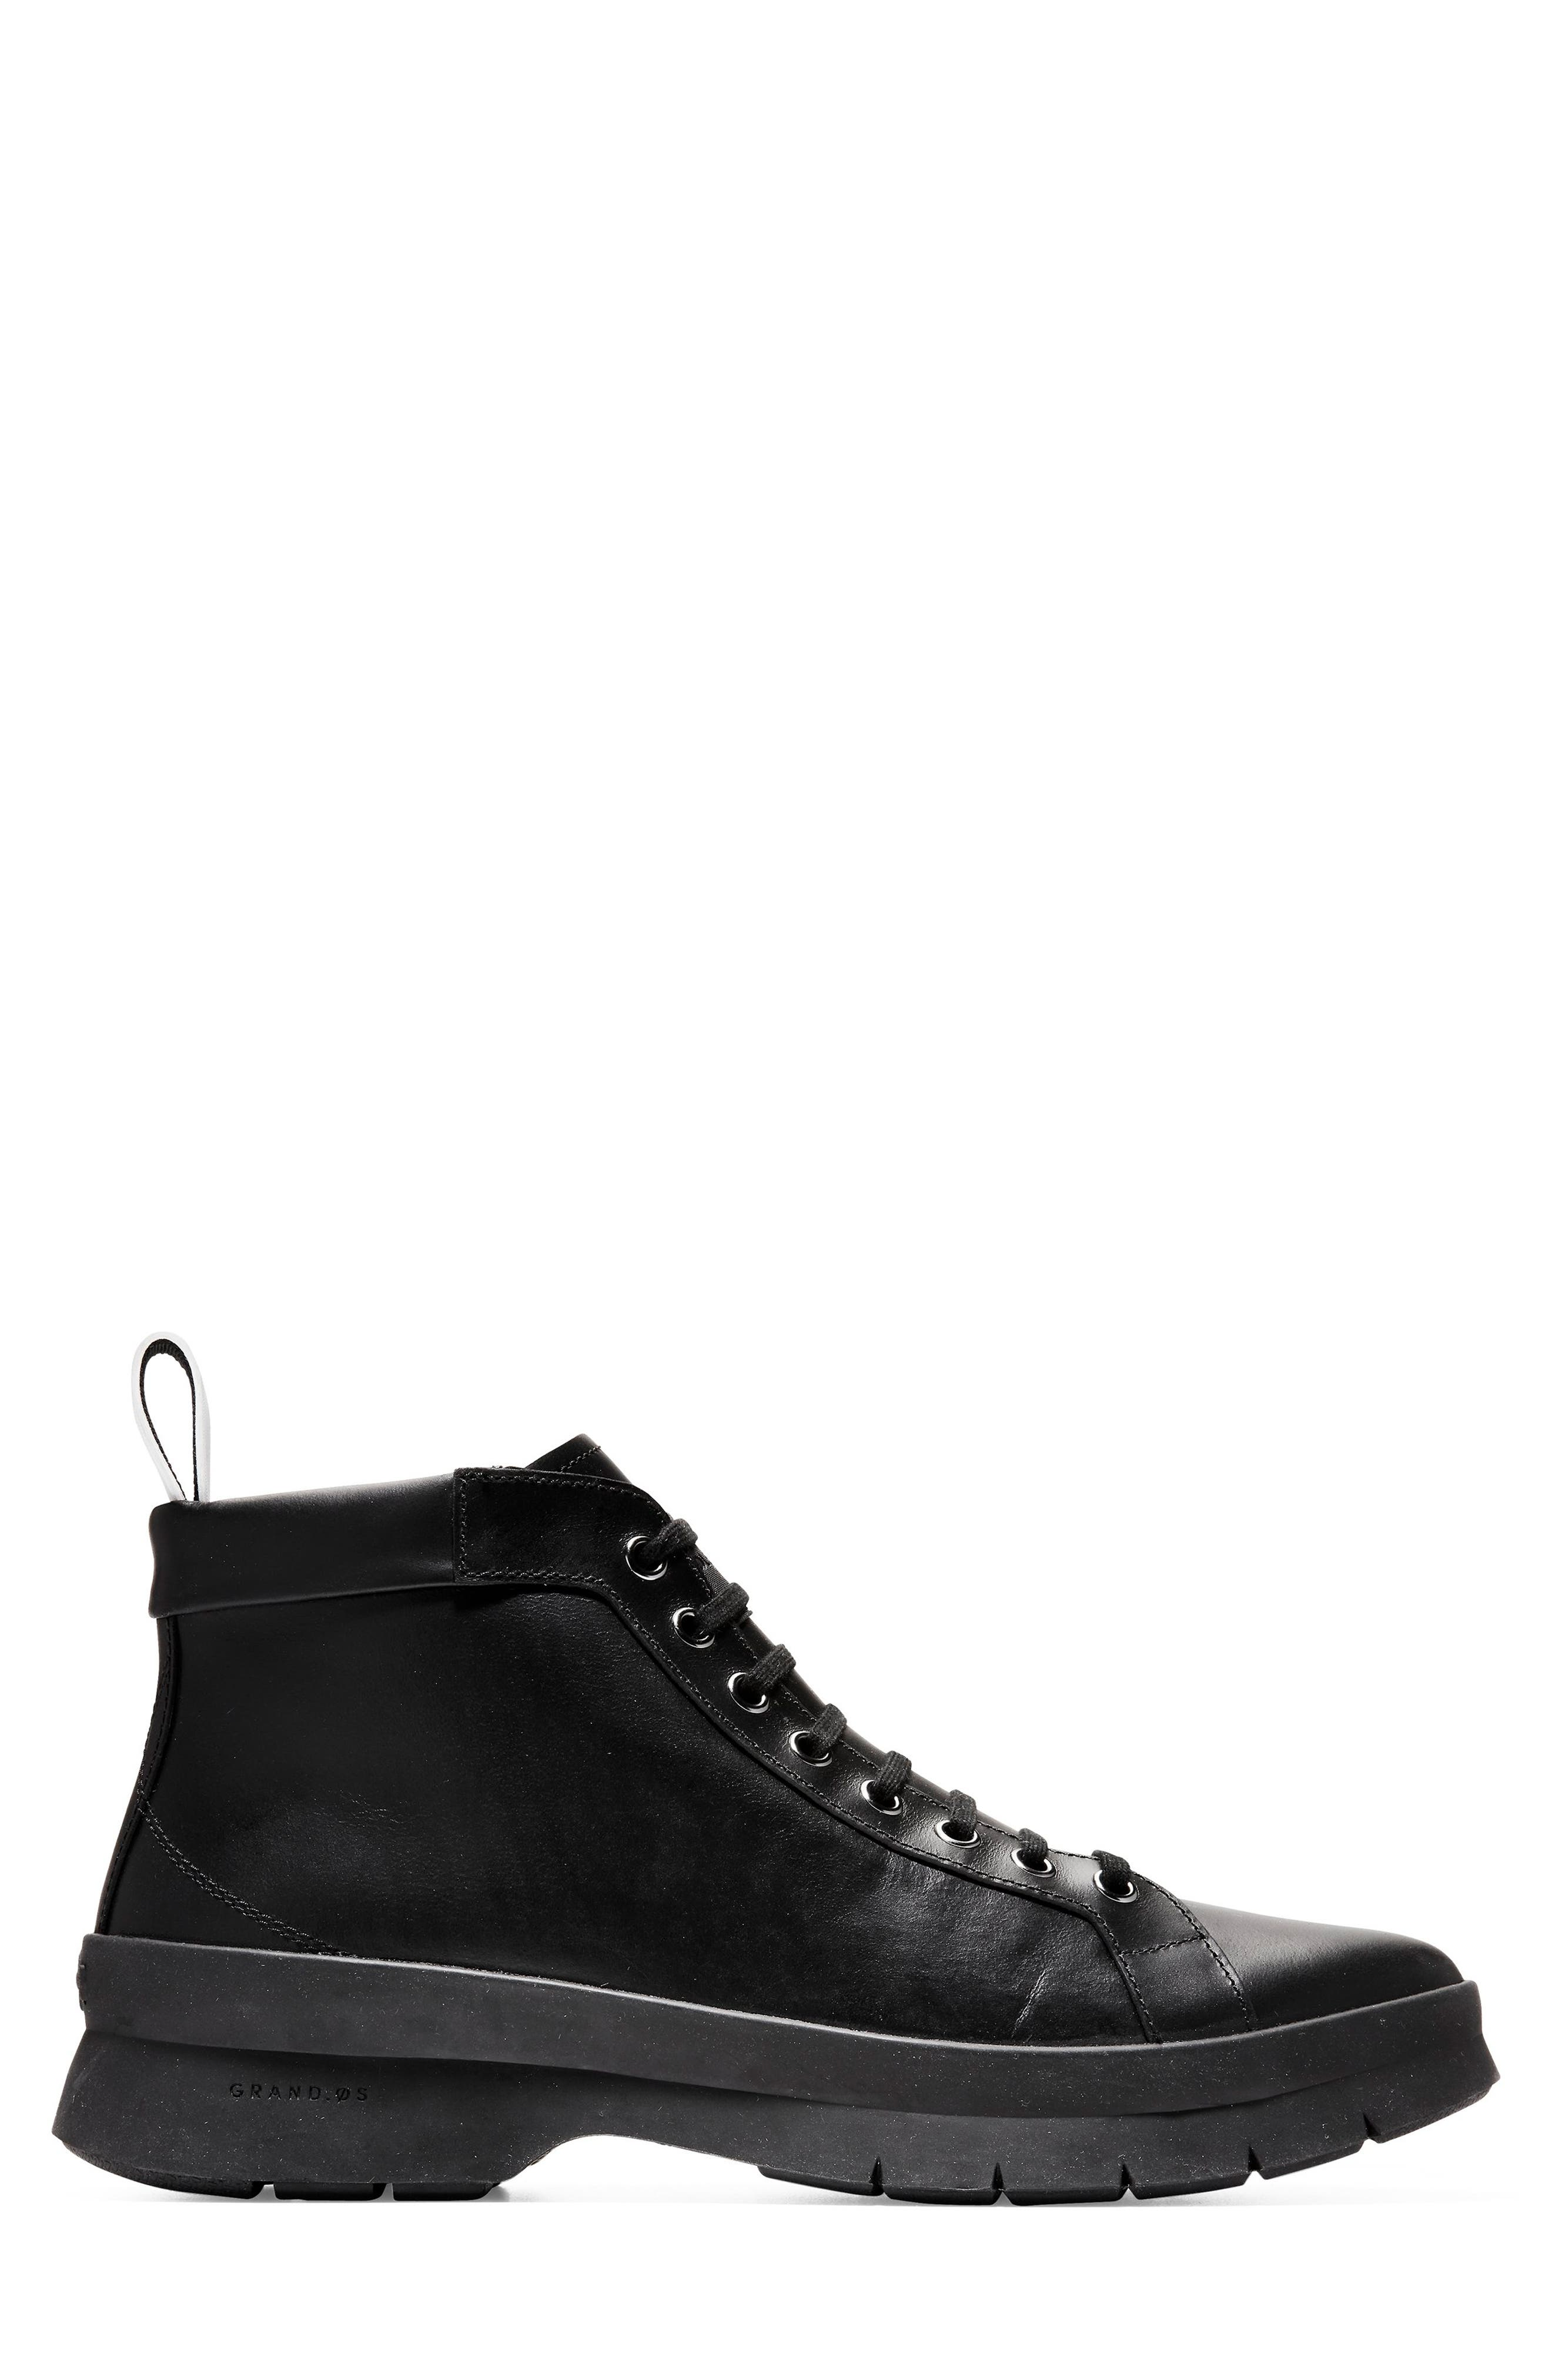 Pinch Utility Waterproof Boot,                             Alternate thumbnail 3, color,                             BLACK LEATHER